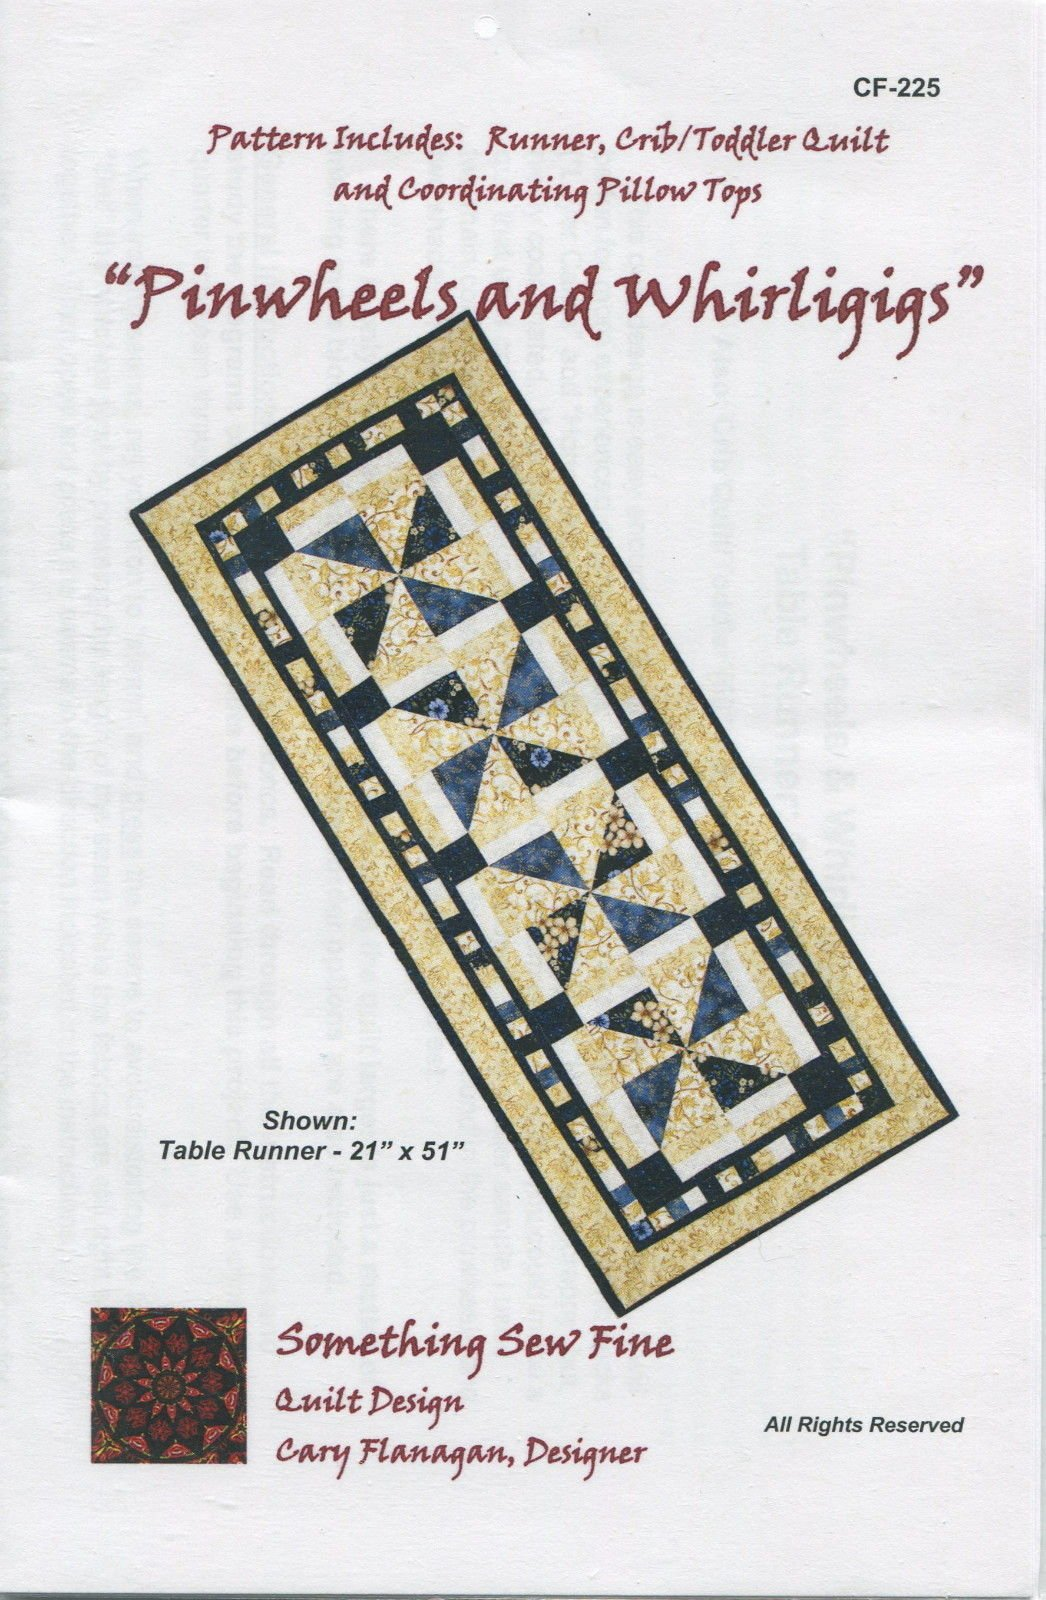 Pinwheels and Whirligigs Runner and Quilt Pattern